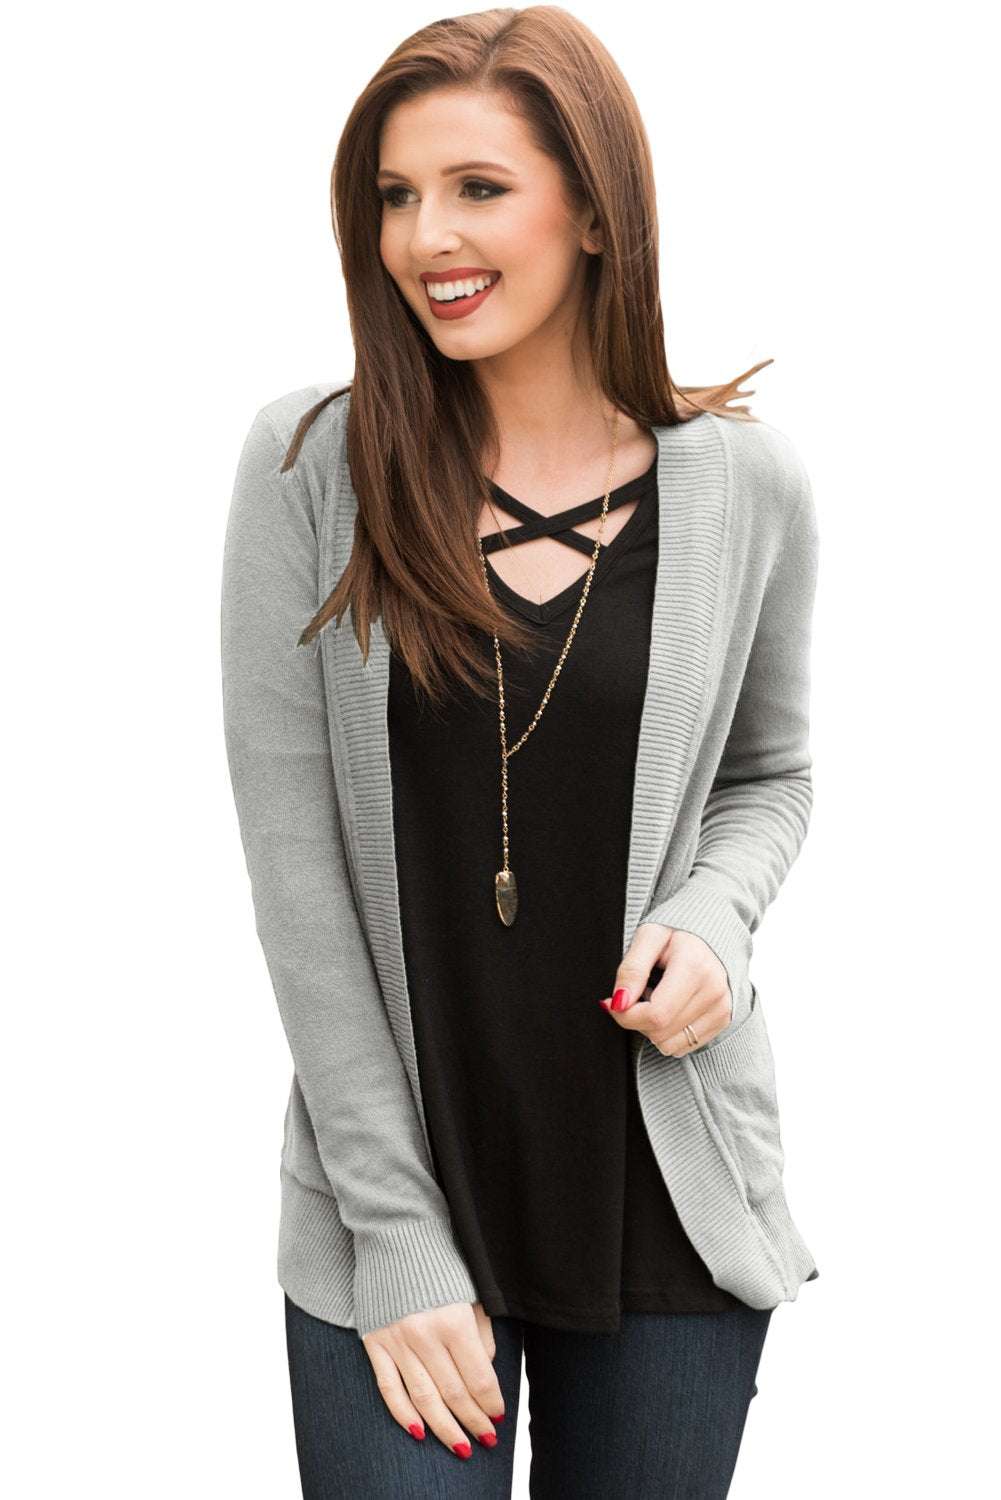 Gray Knit Long Sleeve Cardigan Top with Pockets-Outerwear, Sweaters & Cardigans-Azura Exchange